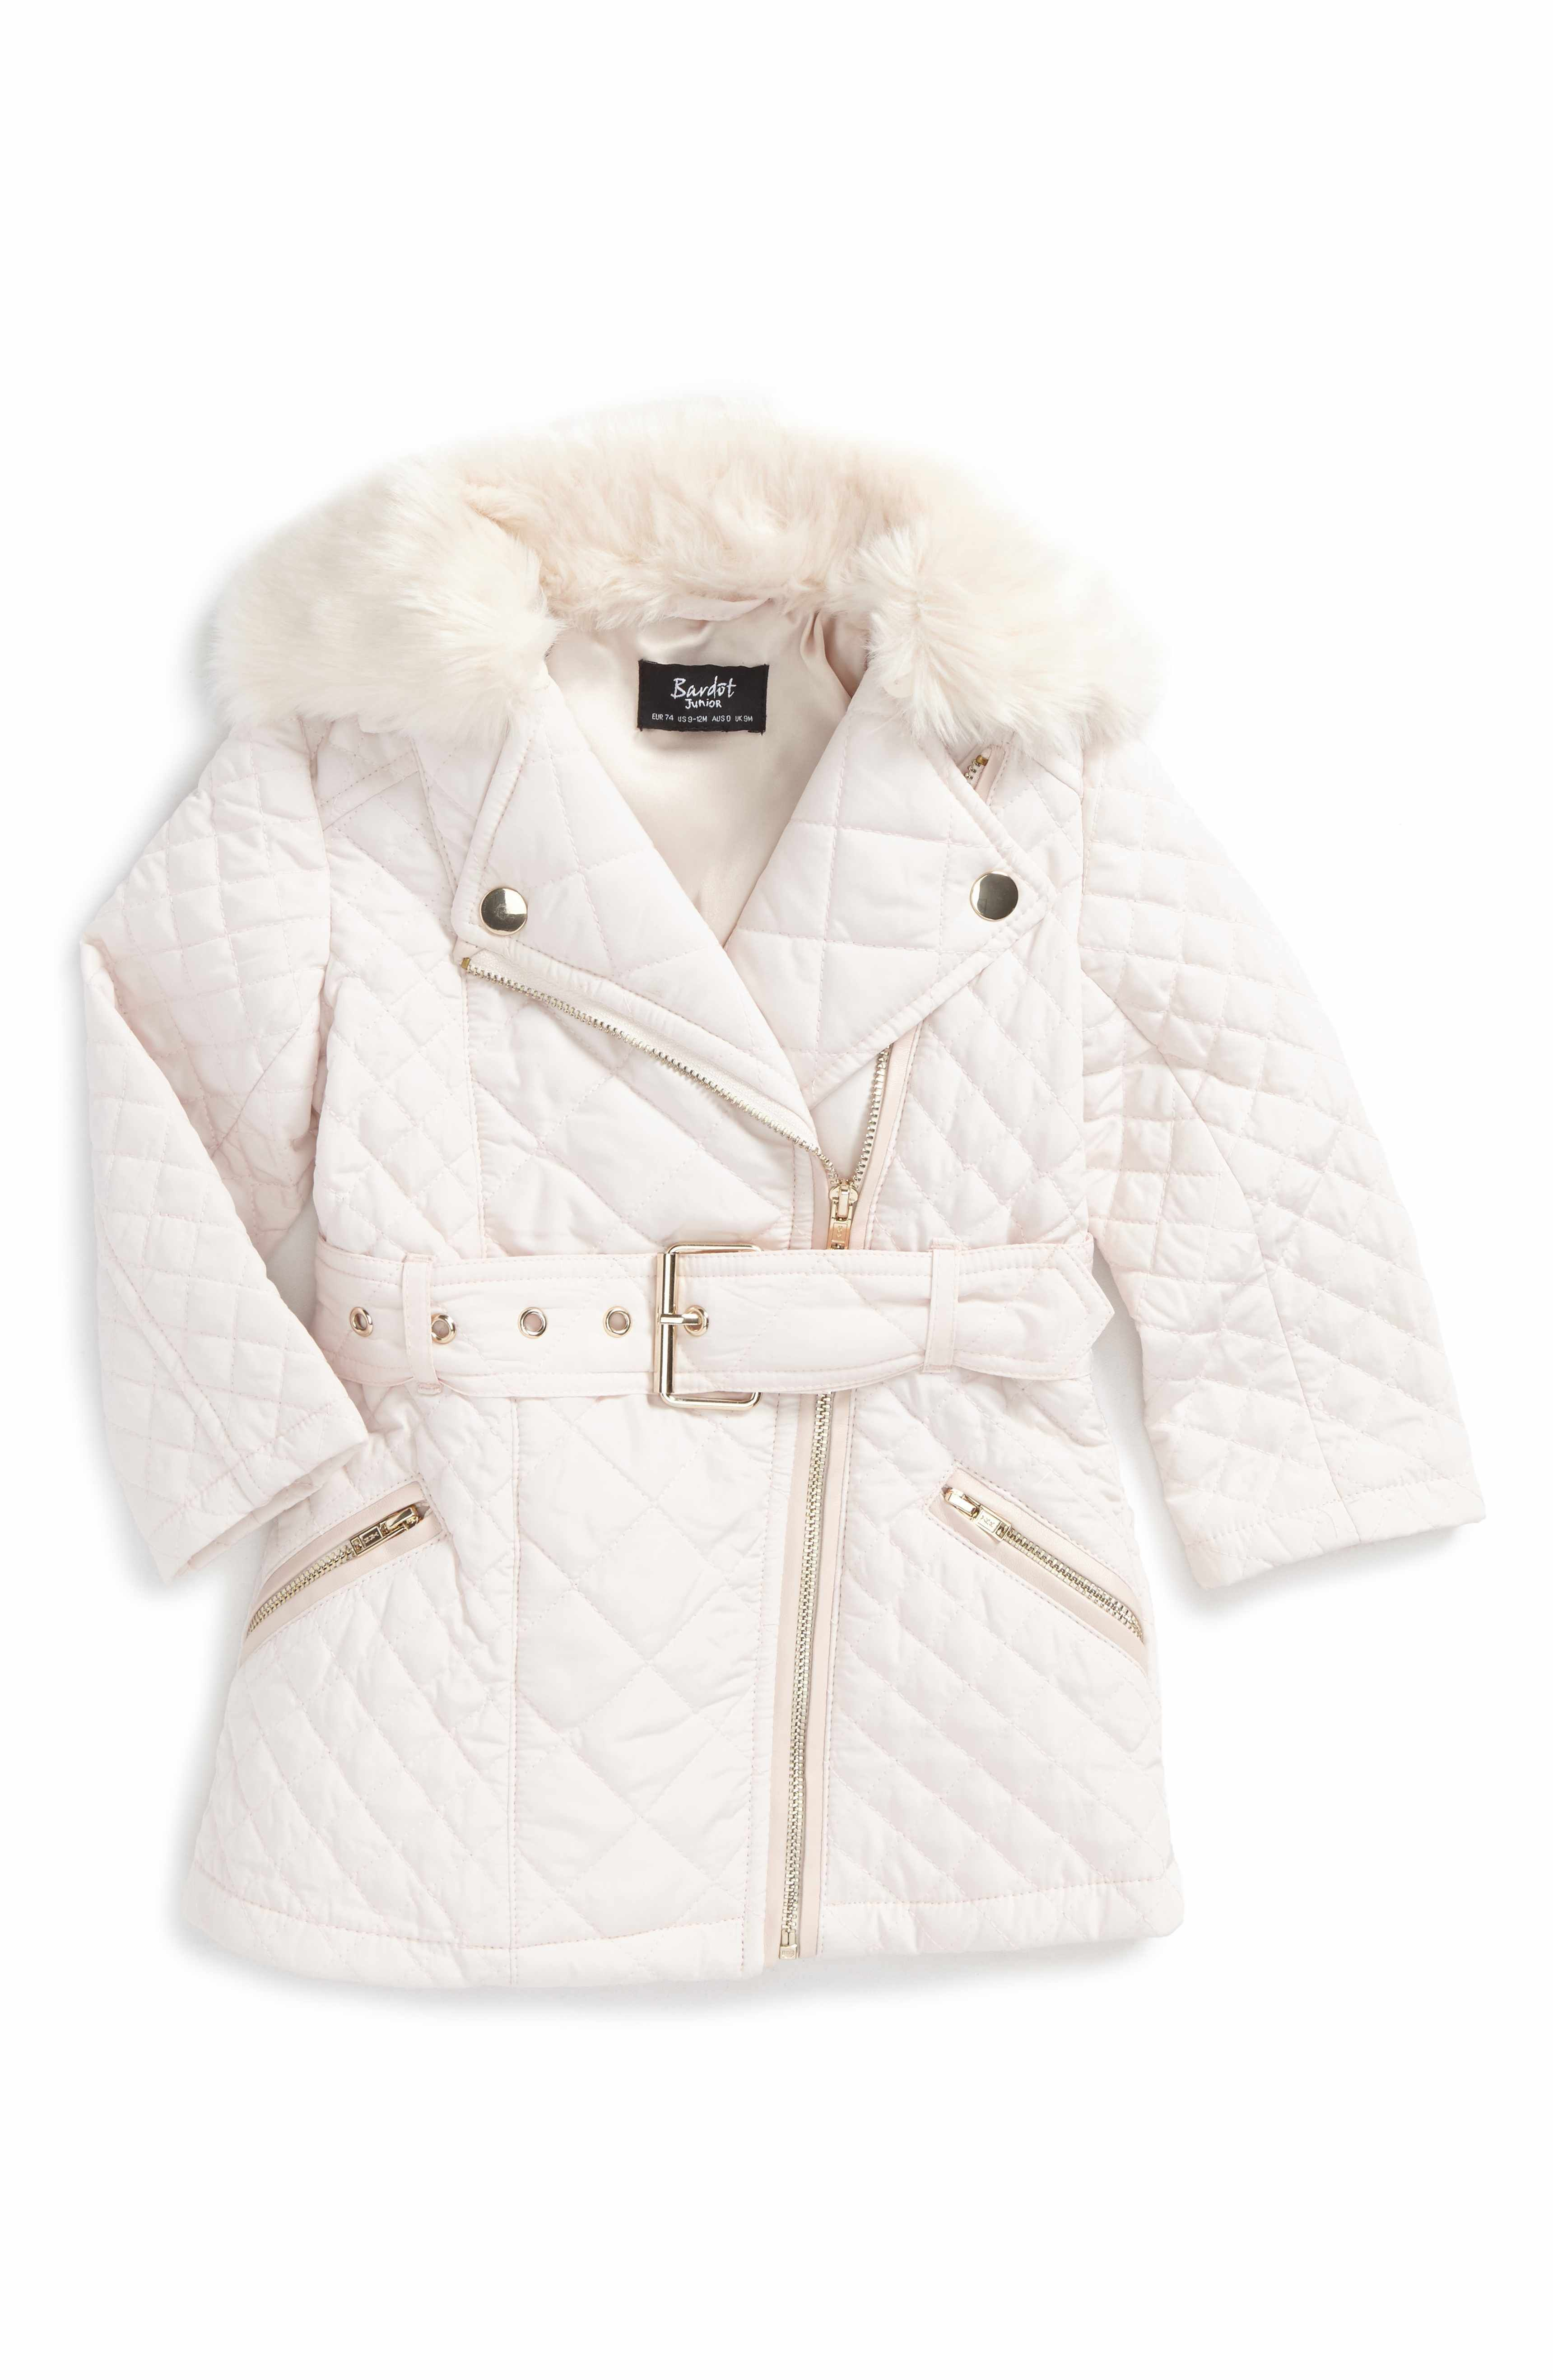 ca8fa90236fe Main Image - Bardot Junior Quilted Jacket with Faux Fur Collar (Baby ...